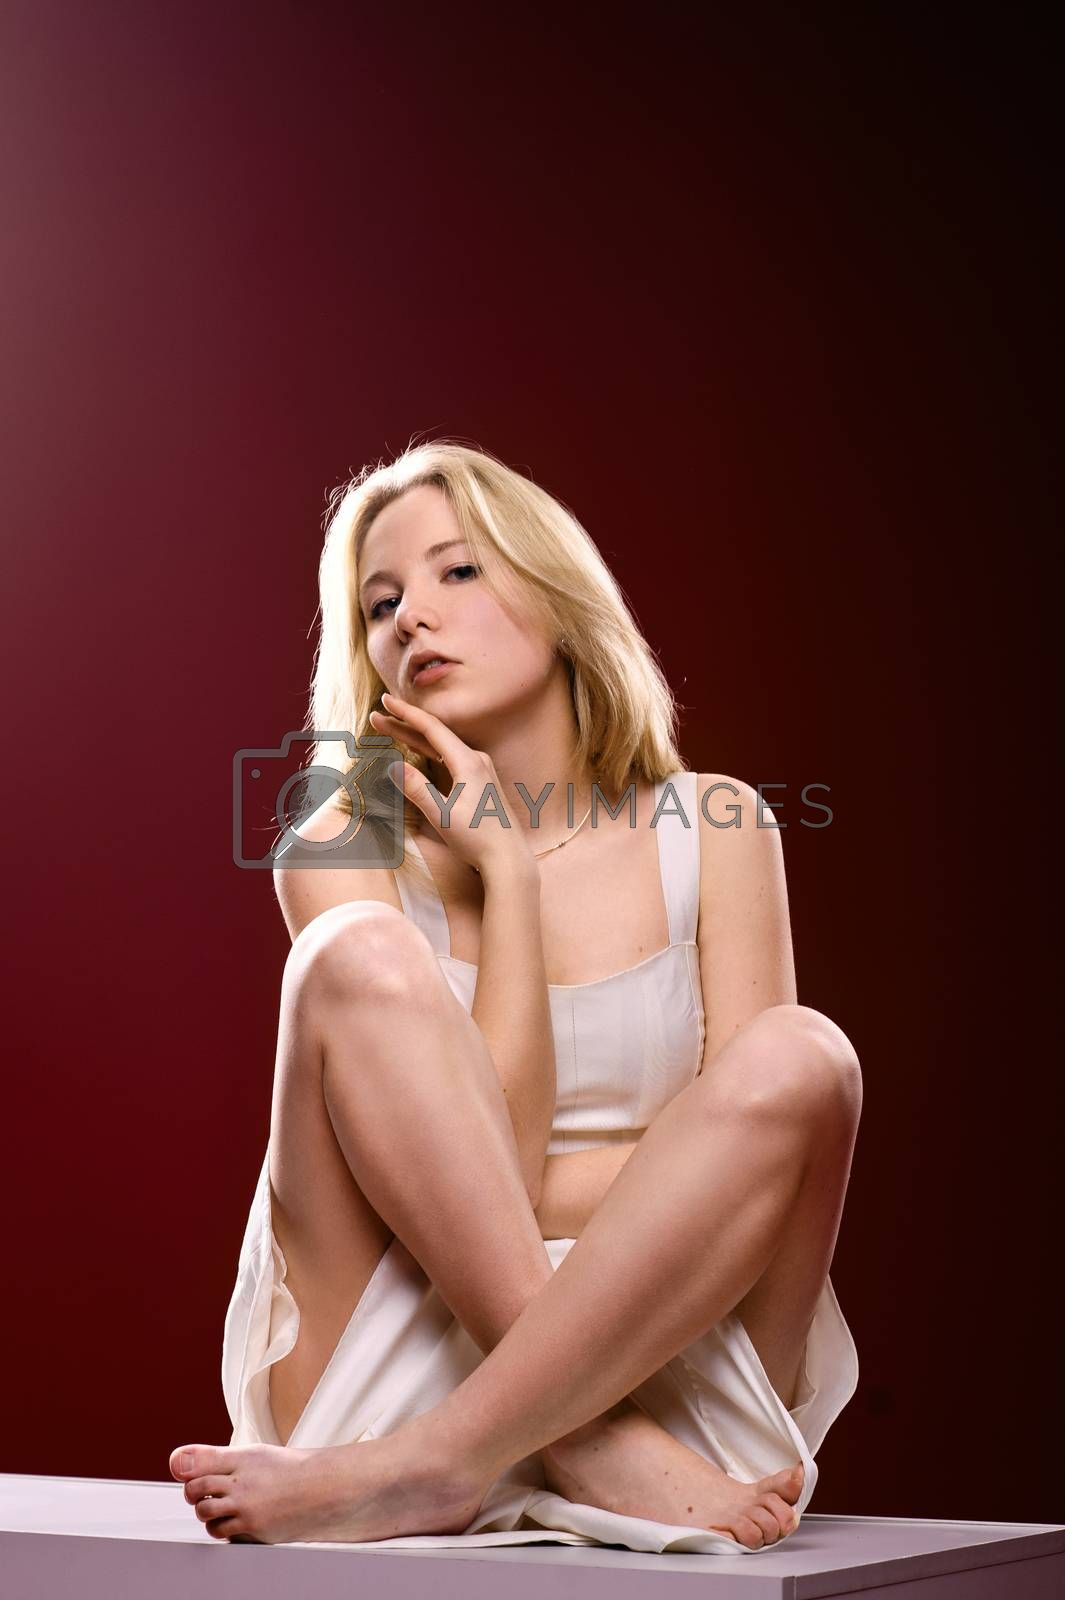 Barefoot girl sitting on a cube with crossed legs isolated on red background